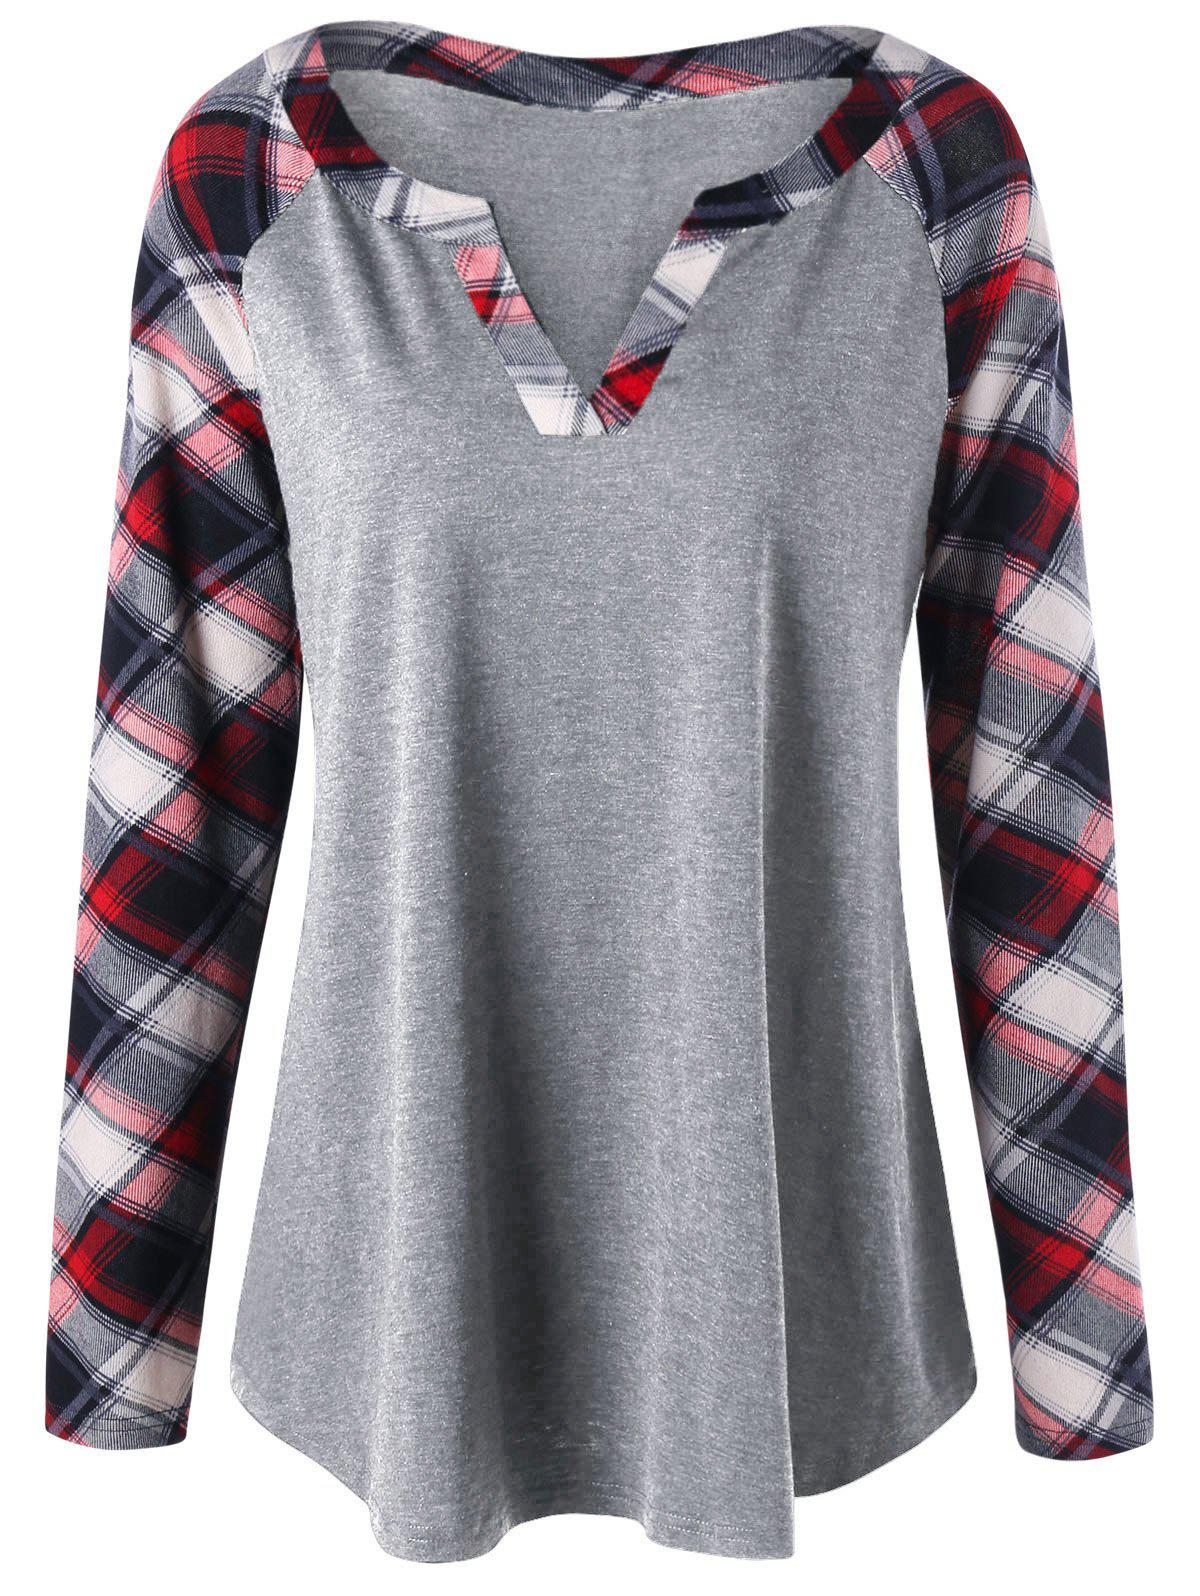 46dc800680297 2019 Plus Size Raglan Sleeve Plaid T-shirt